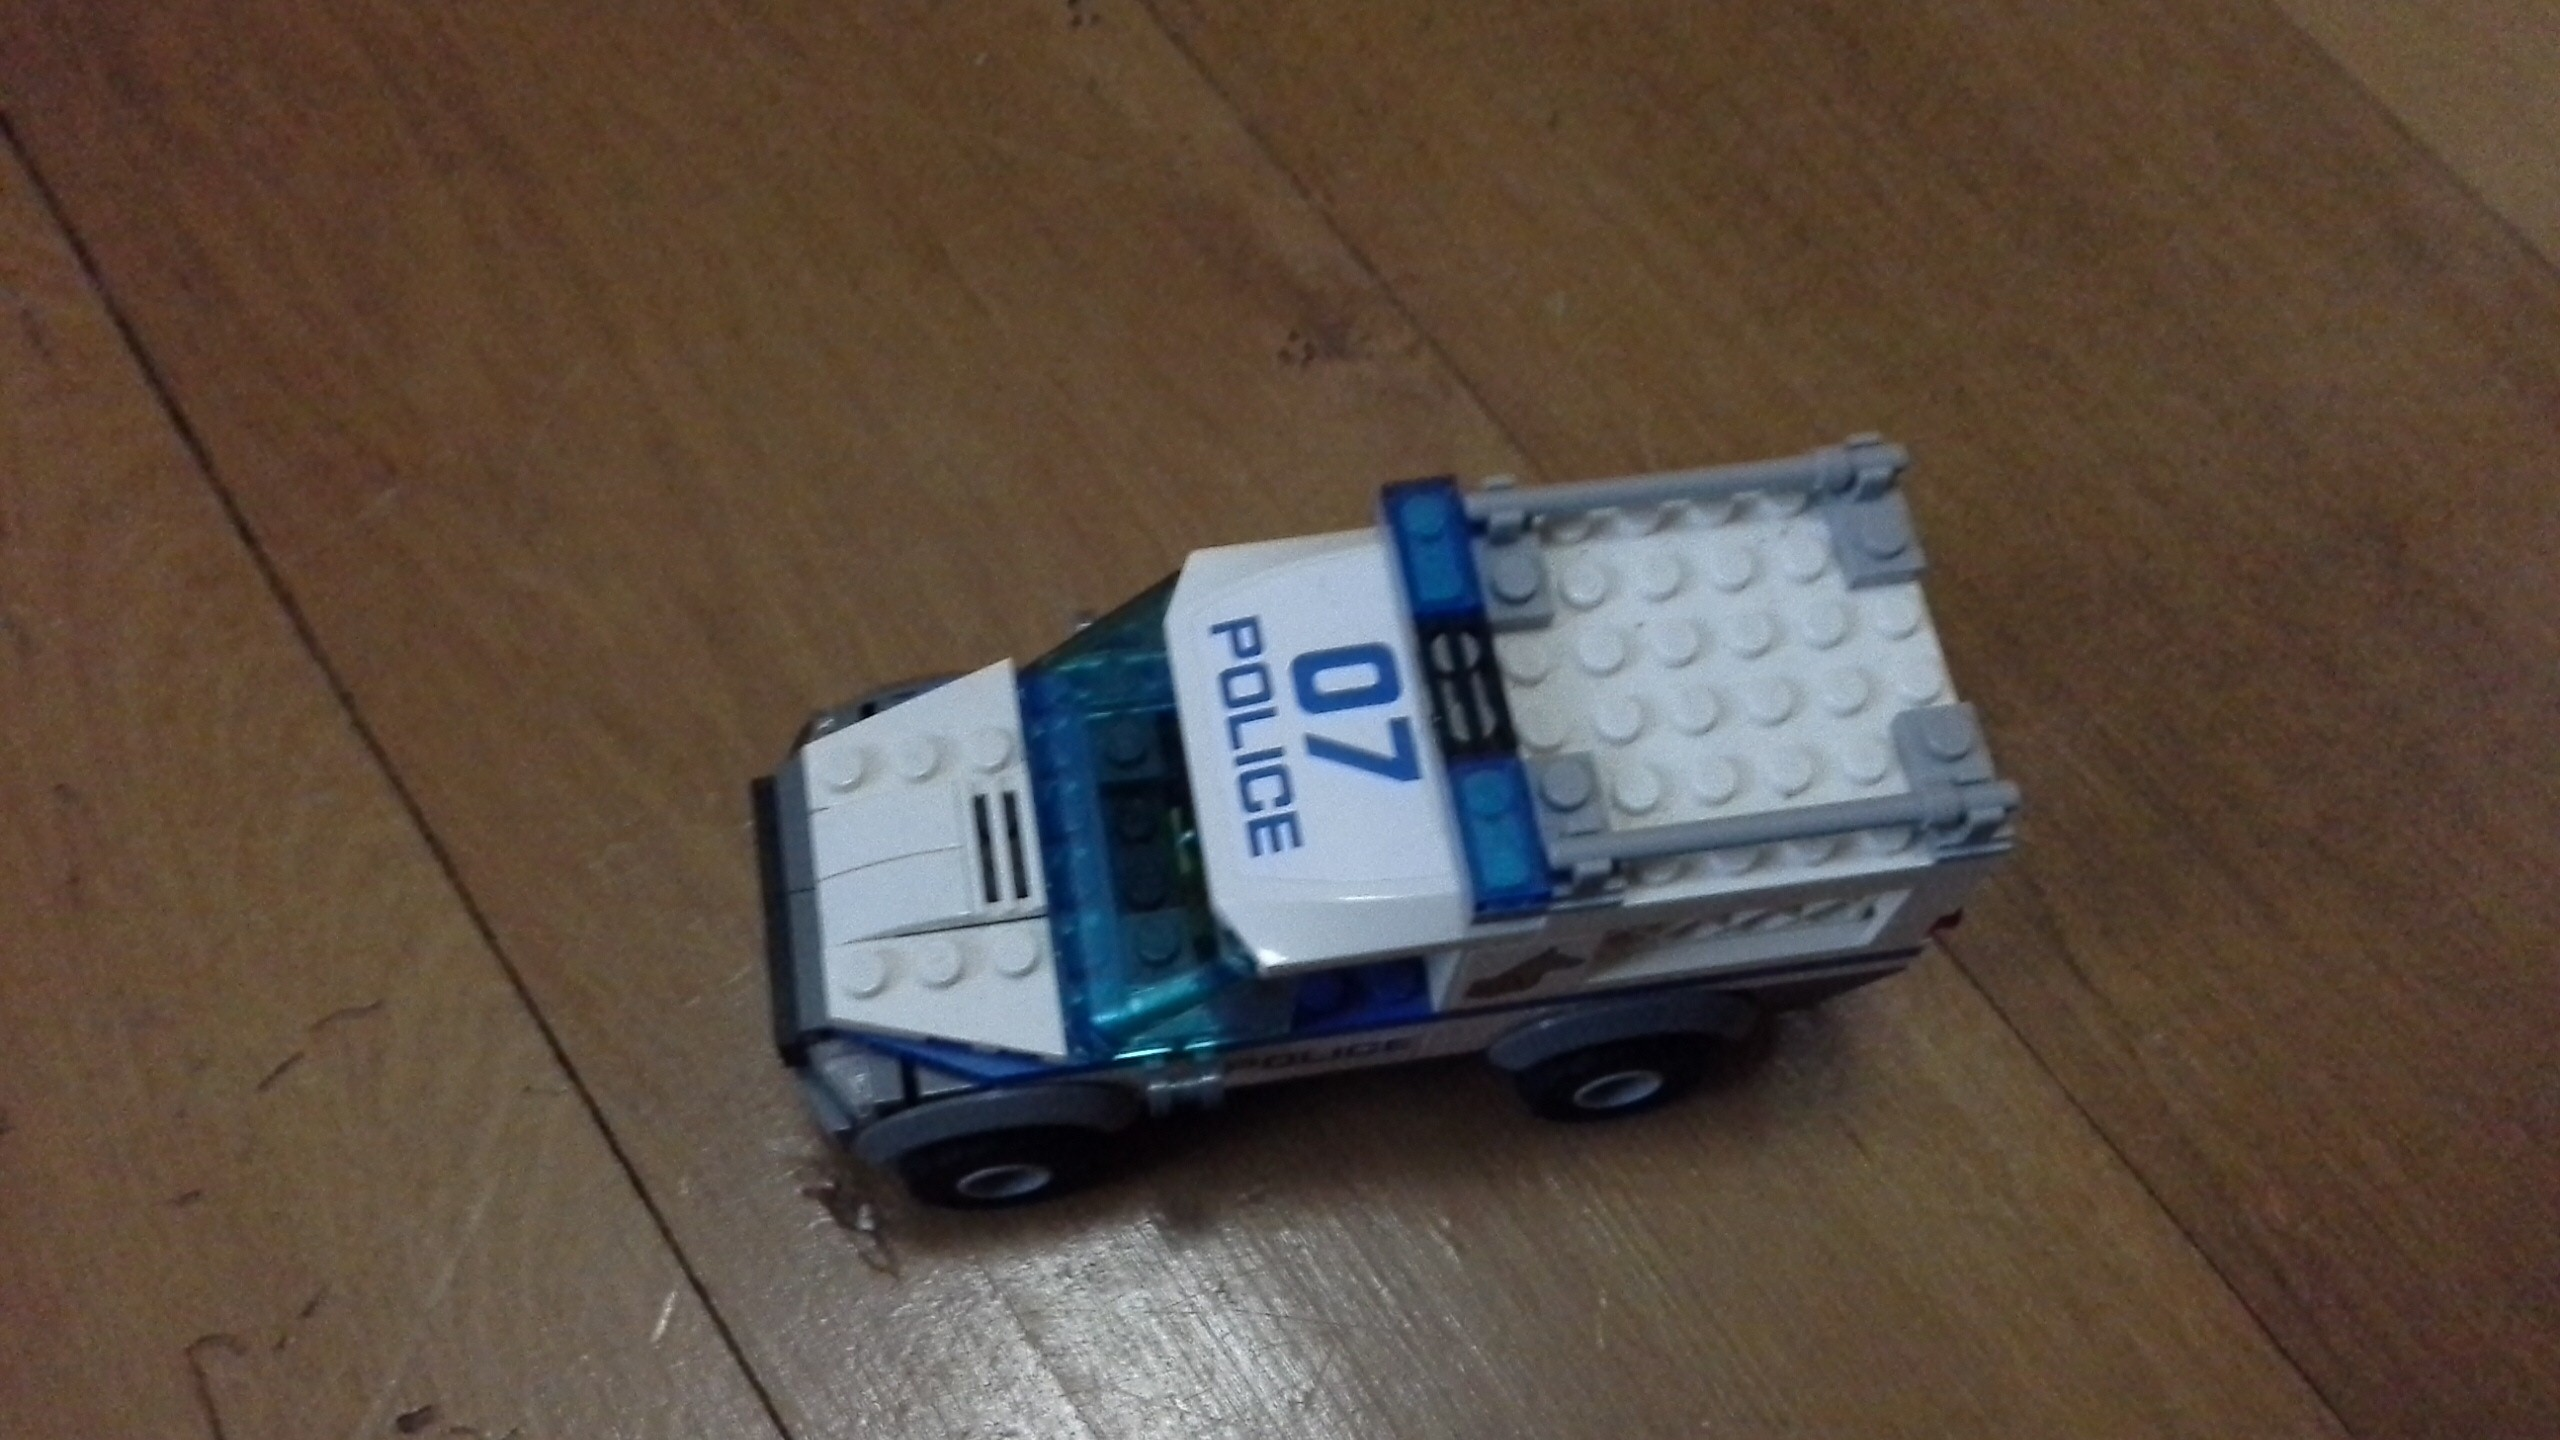 police cars are the best way to get prisoners to jale